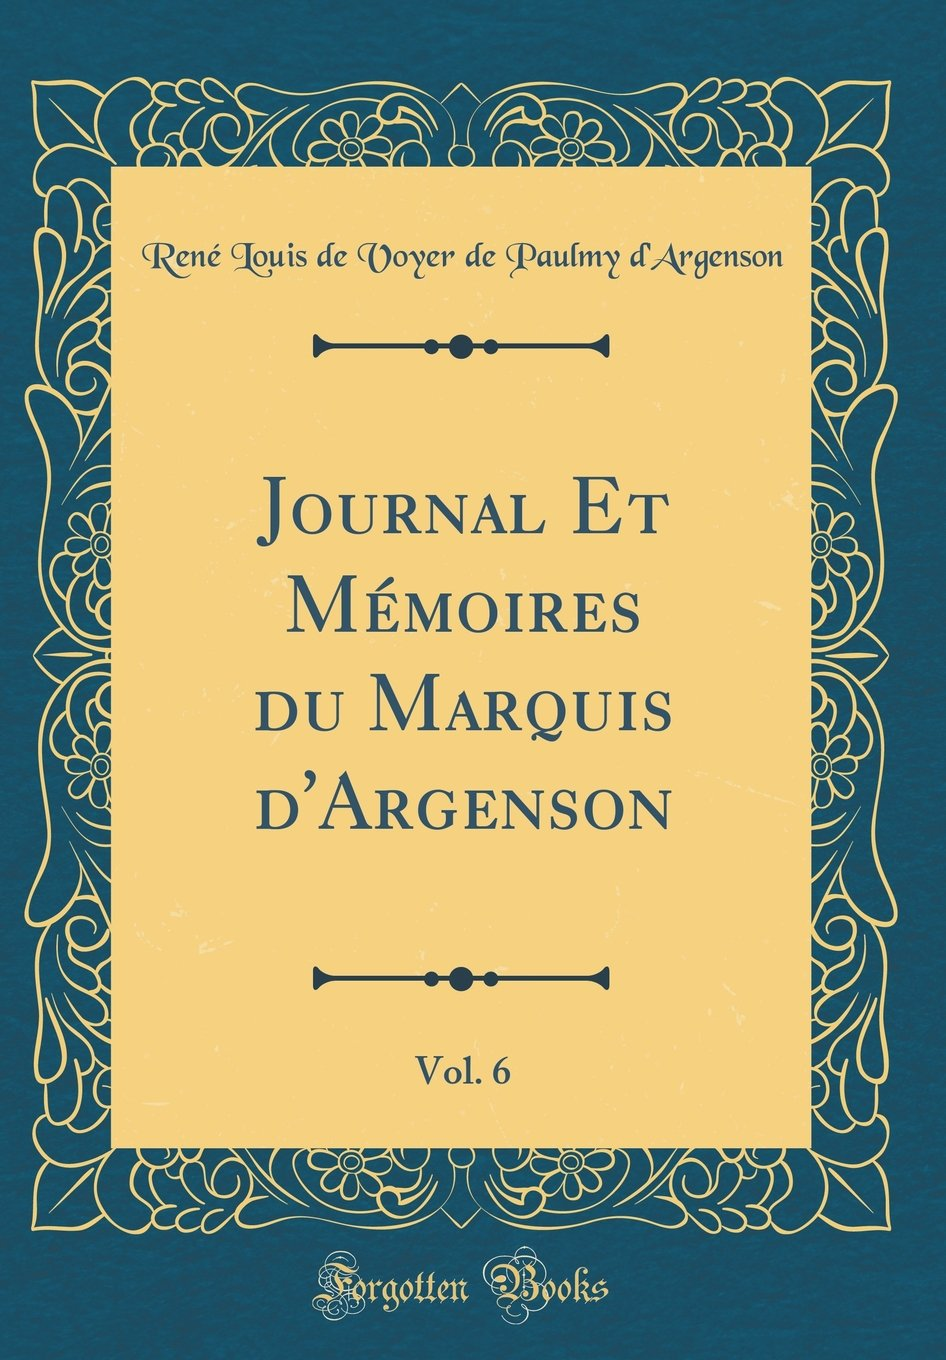 Journal Et Mémoires Du Marquis d'Argenson, Vol. 6 (Classic Reprint) (French Edition) PDF